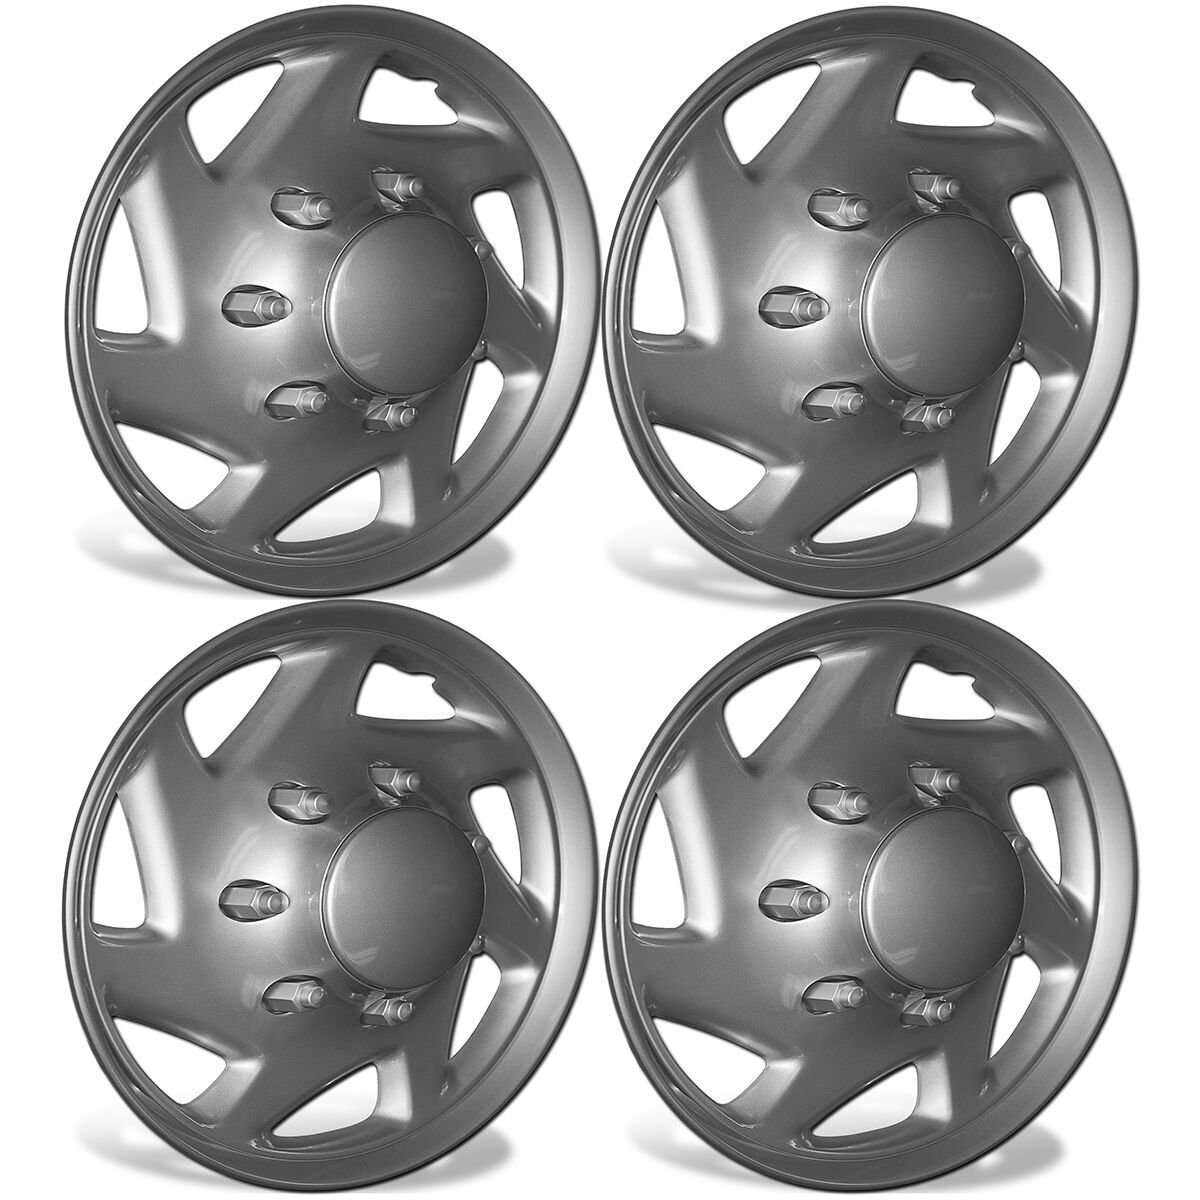 OxGord 16 inch Hubcaps Best for 2007-2014 Ford E-150 - (Set of 4) Wheel Covers 16in Hub Caps Silver Rim Cover - Car Accessories for 16 inch Wheels - Snap On Hubcap, Auto Tire Replacement Exterior Cap